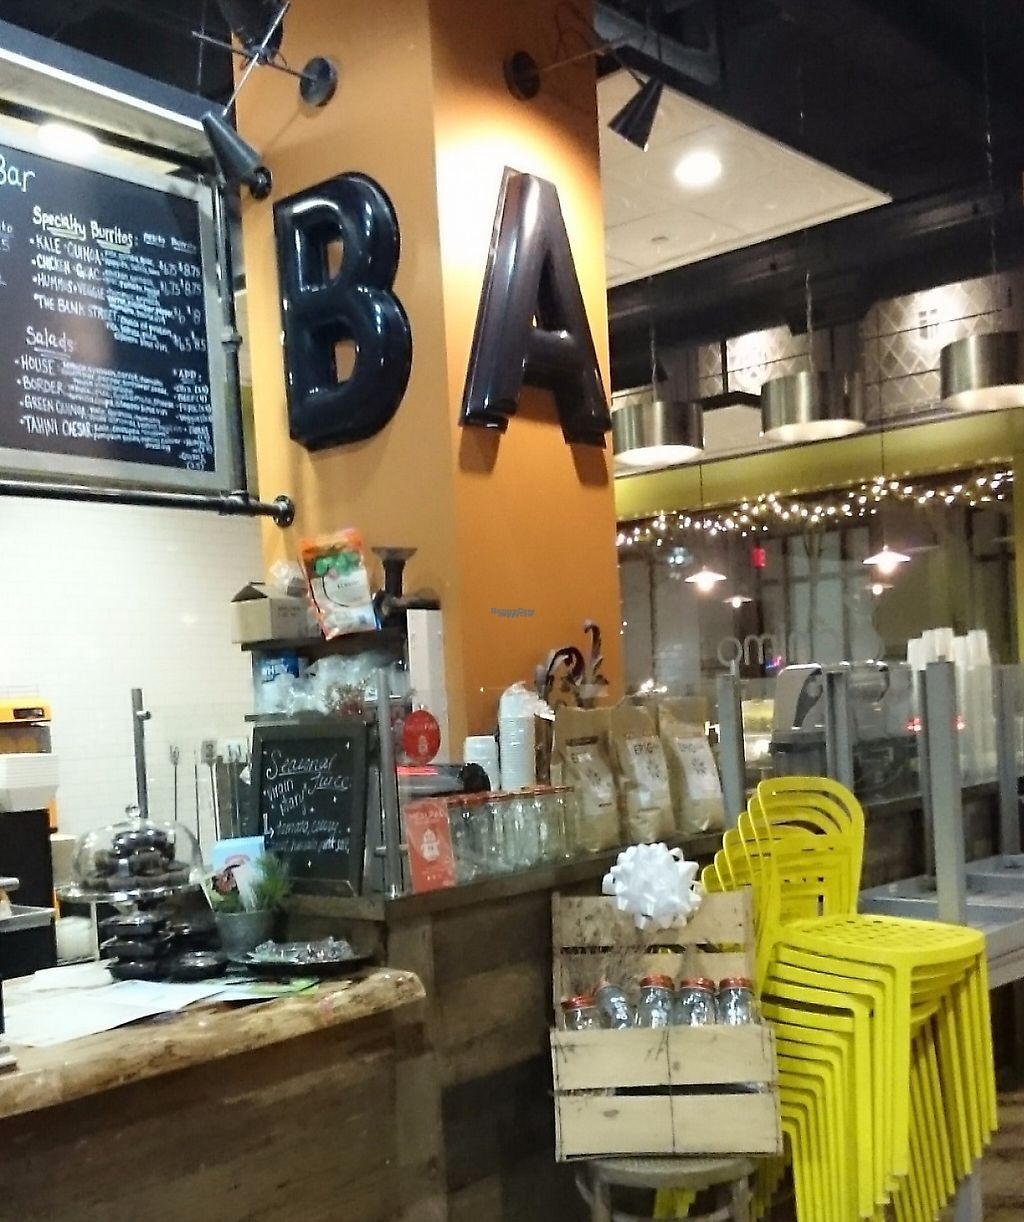 """Photo of Animo Juice Bar and Burrito Bar  by <a href=""""/members/profile/ZoraySpielvogel"""">ZoraySpielvogel</a> <br/>Cozy inside.  <br/> December 25, 2016  - <a href='/contact/abuse/image/84453/223402'>Report</a>"""